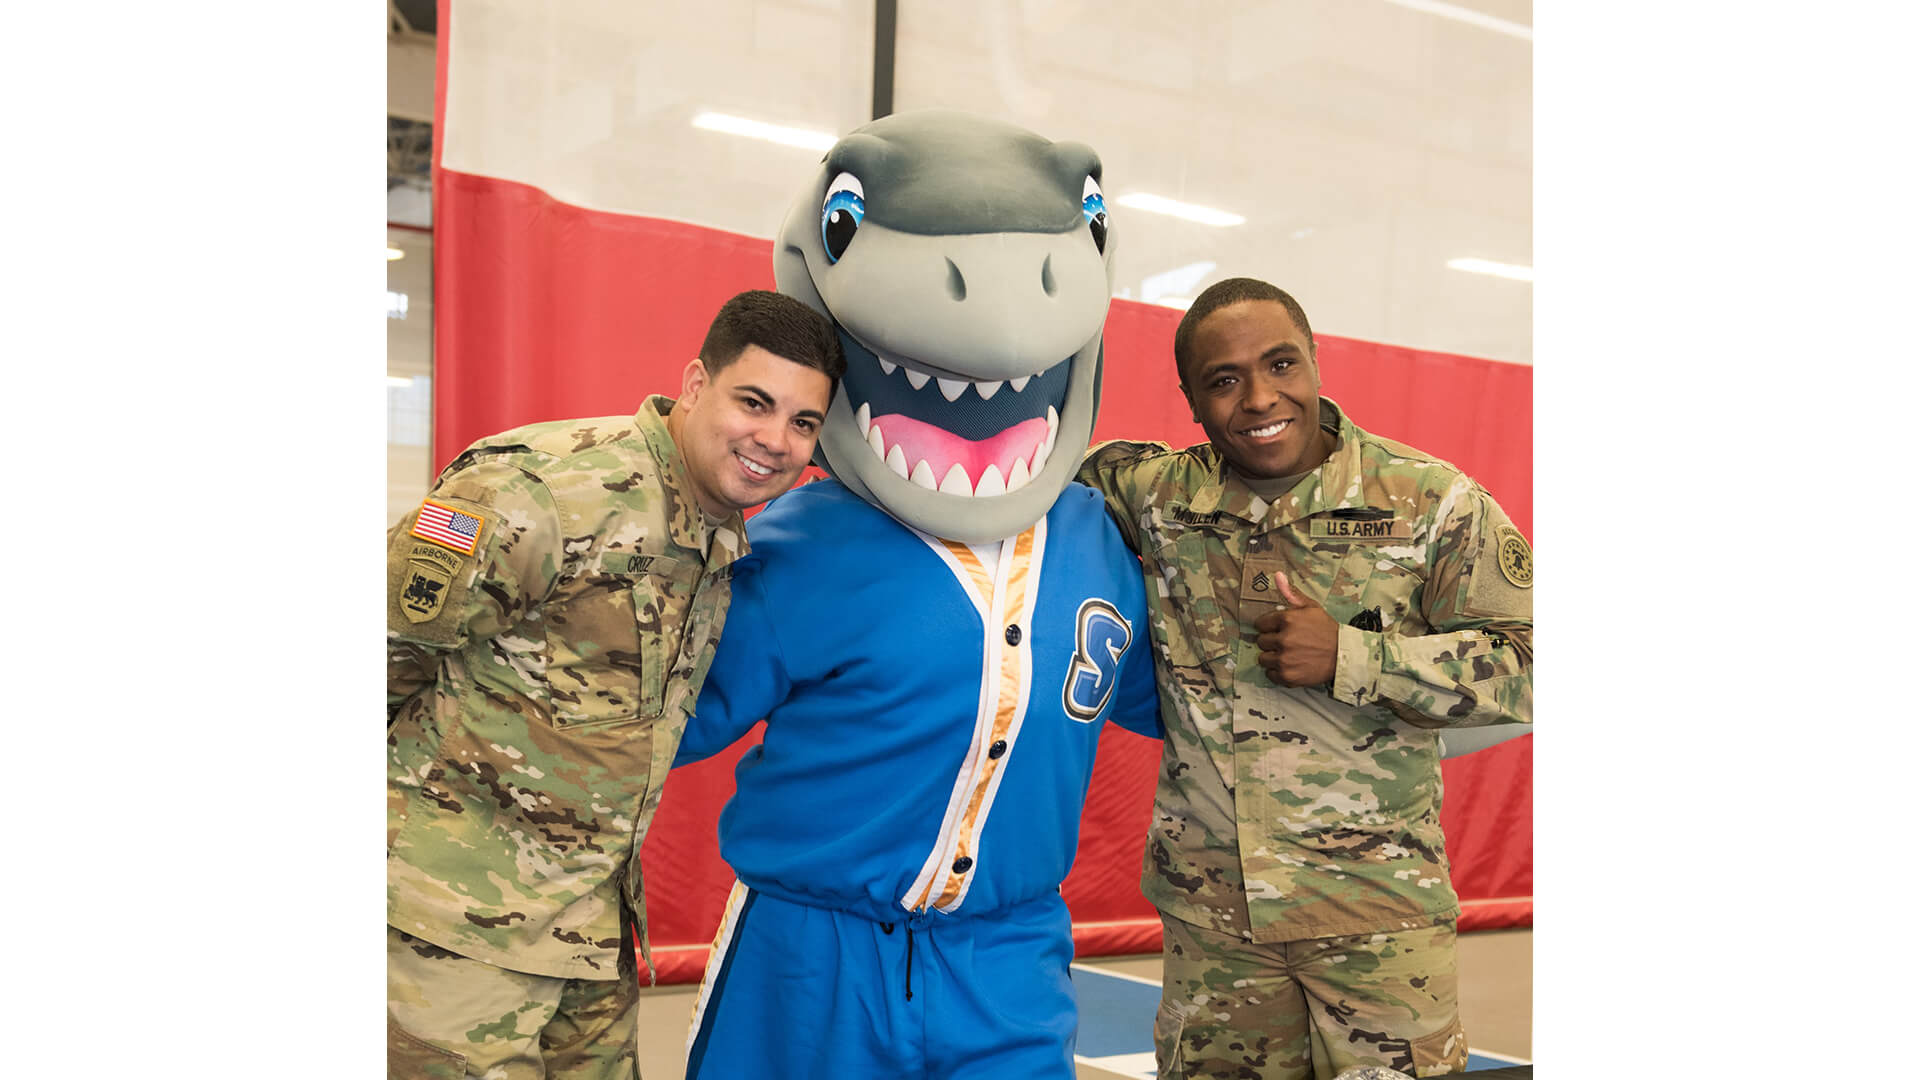 Photo of two active veterans and Finn the shark.